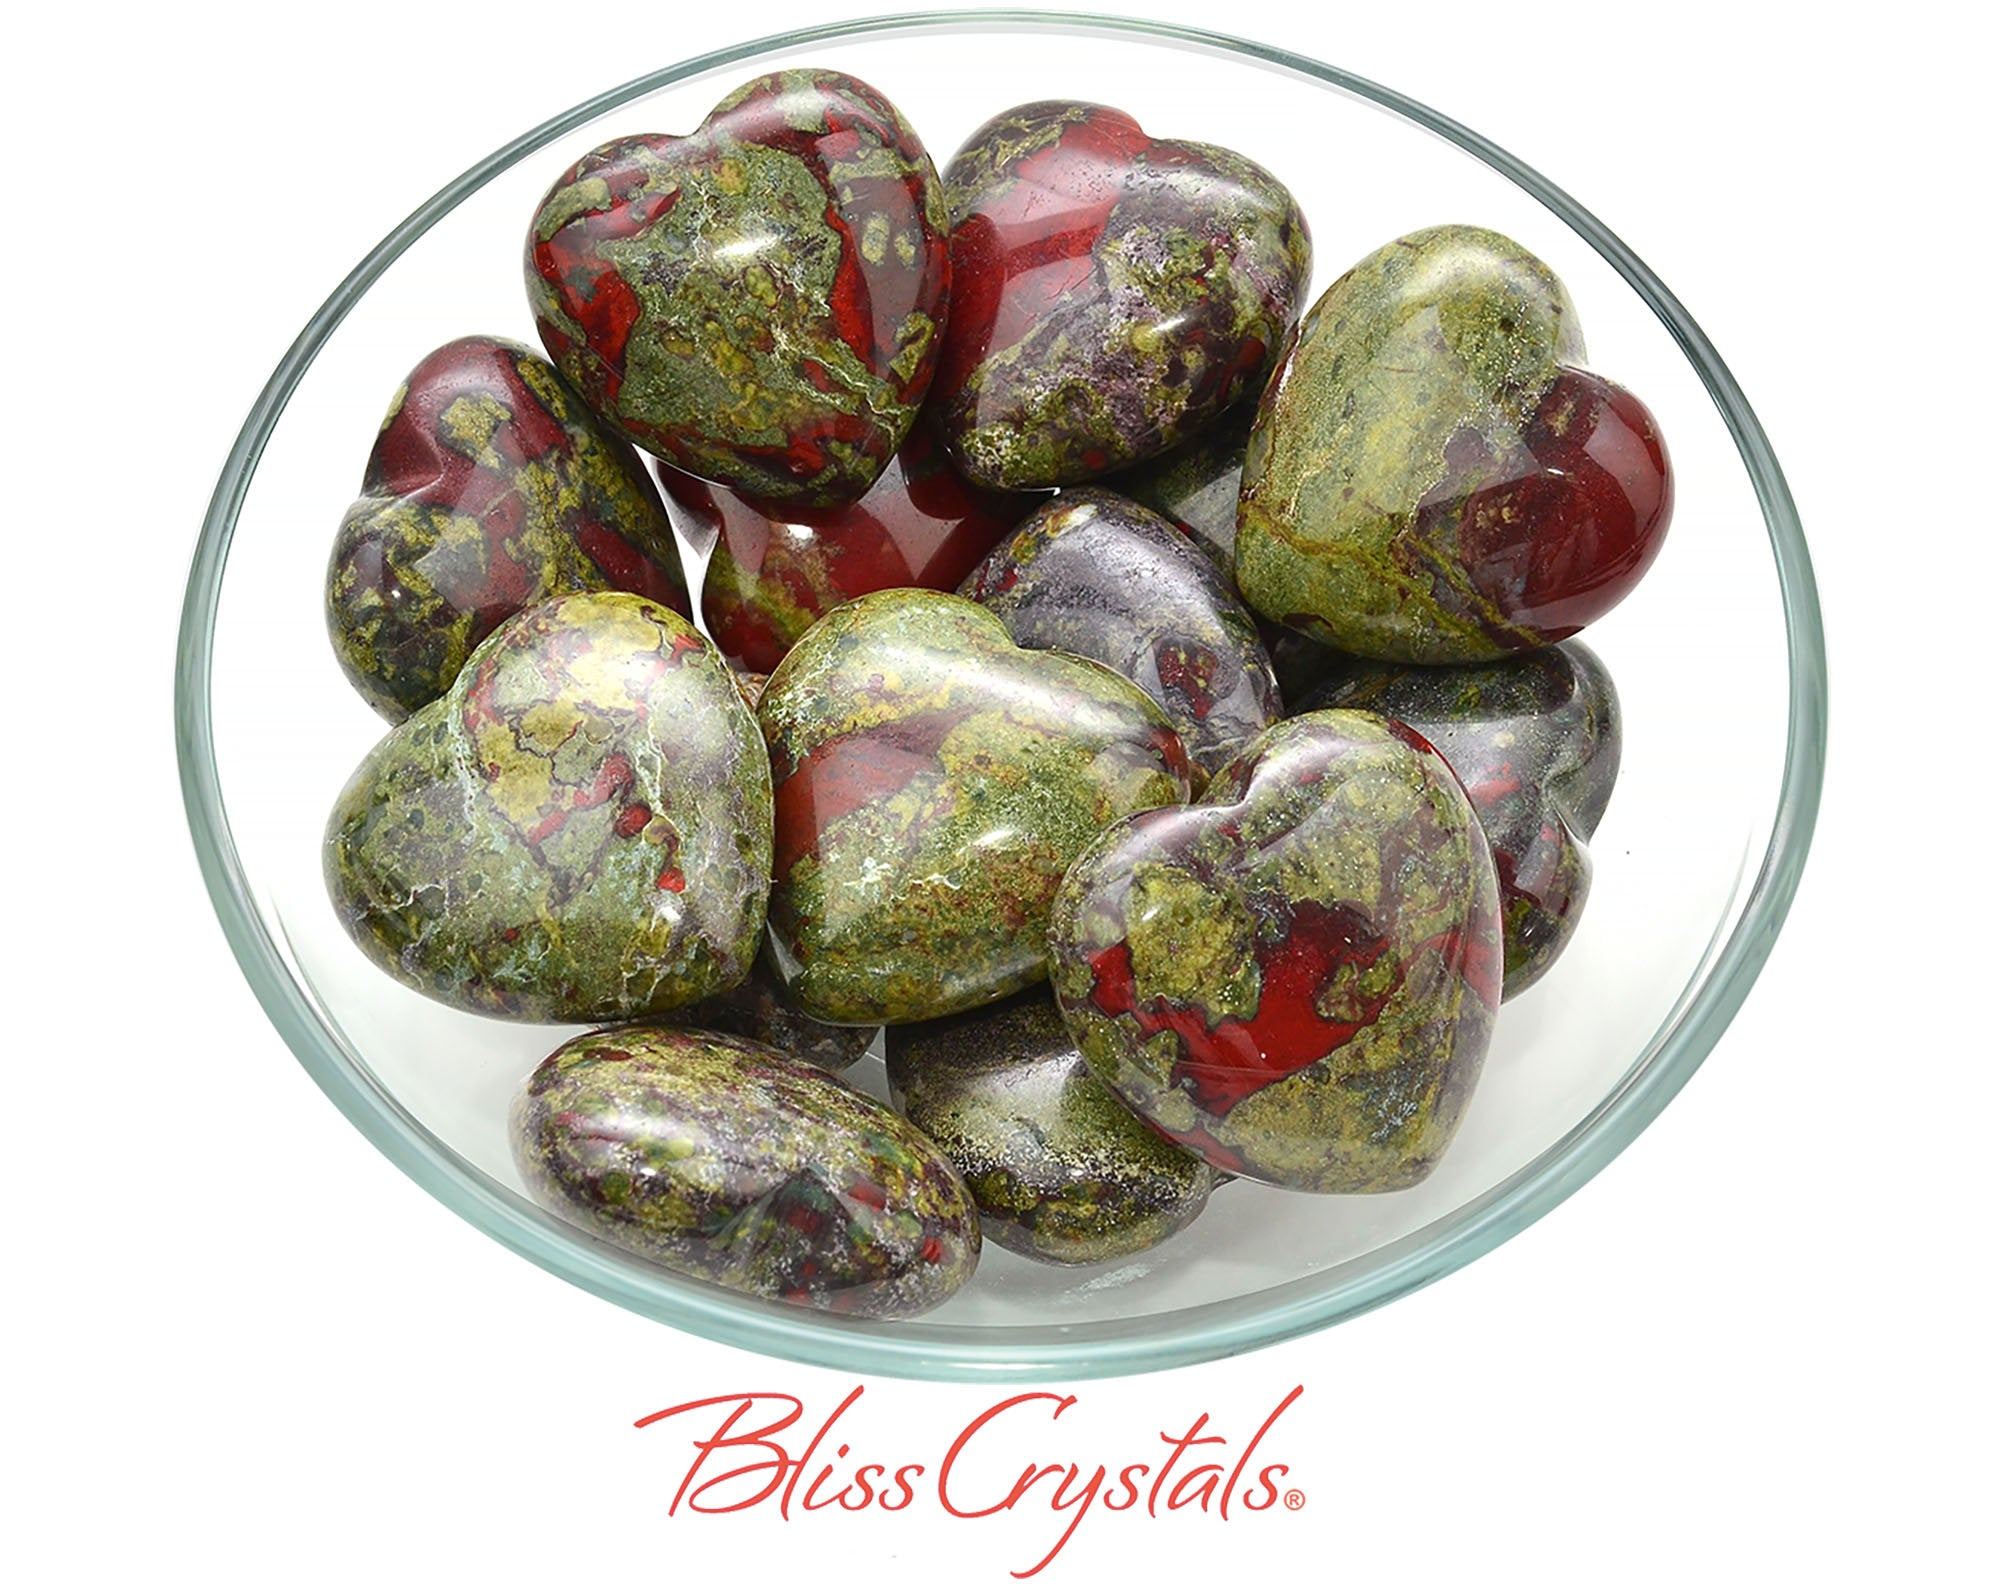 1 DRAGON Blood Stone Heart + Bag Crystal Green and Red Jasper Healing Crystal and Stone for Courage #DB04